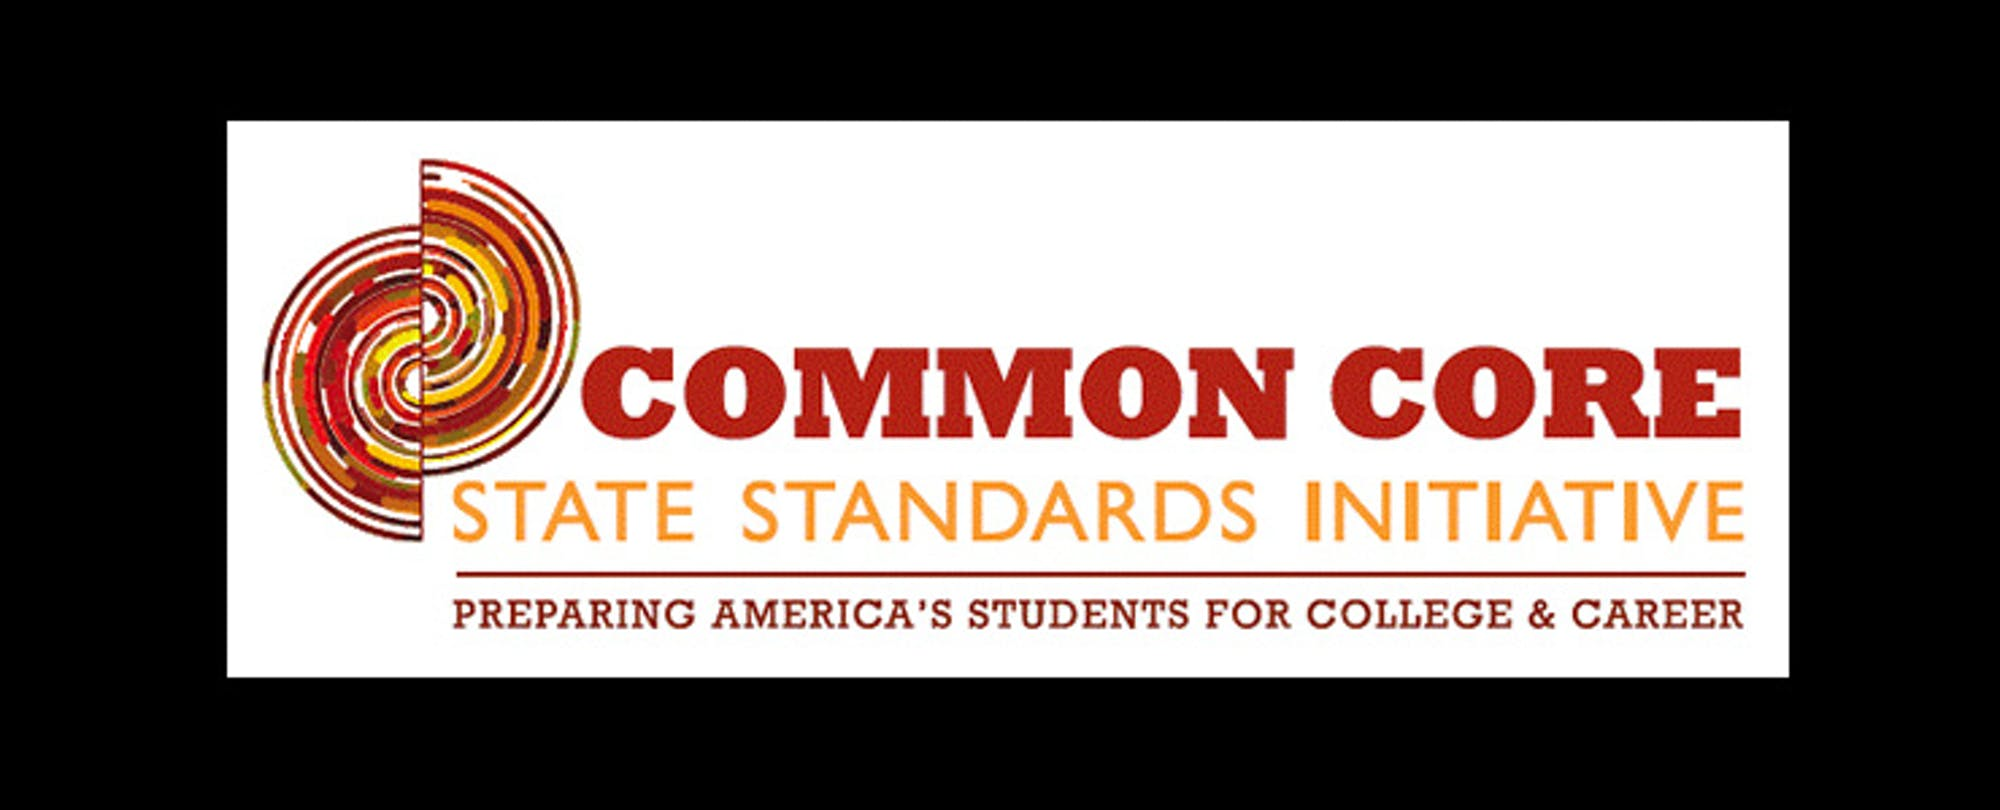 Concerning Common Core